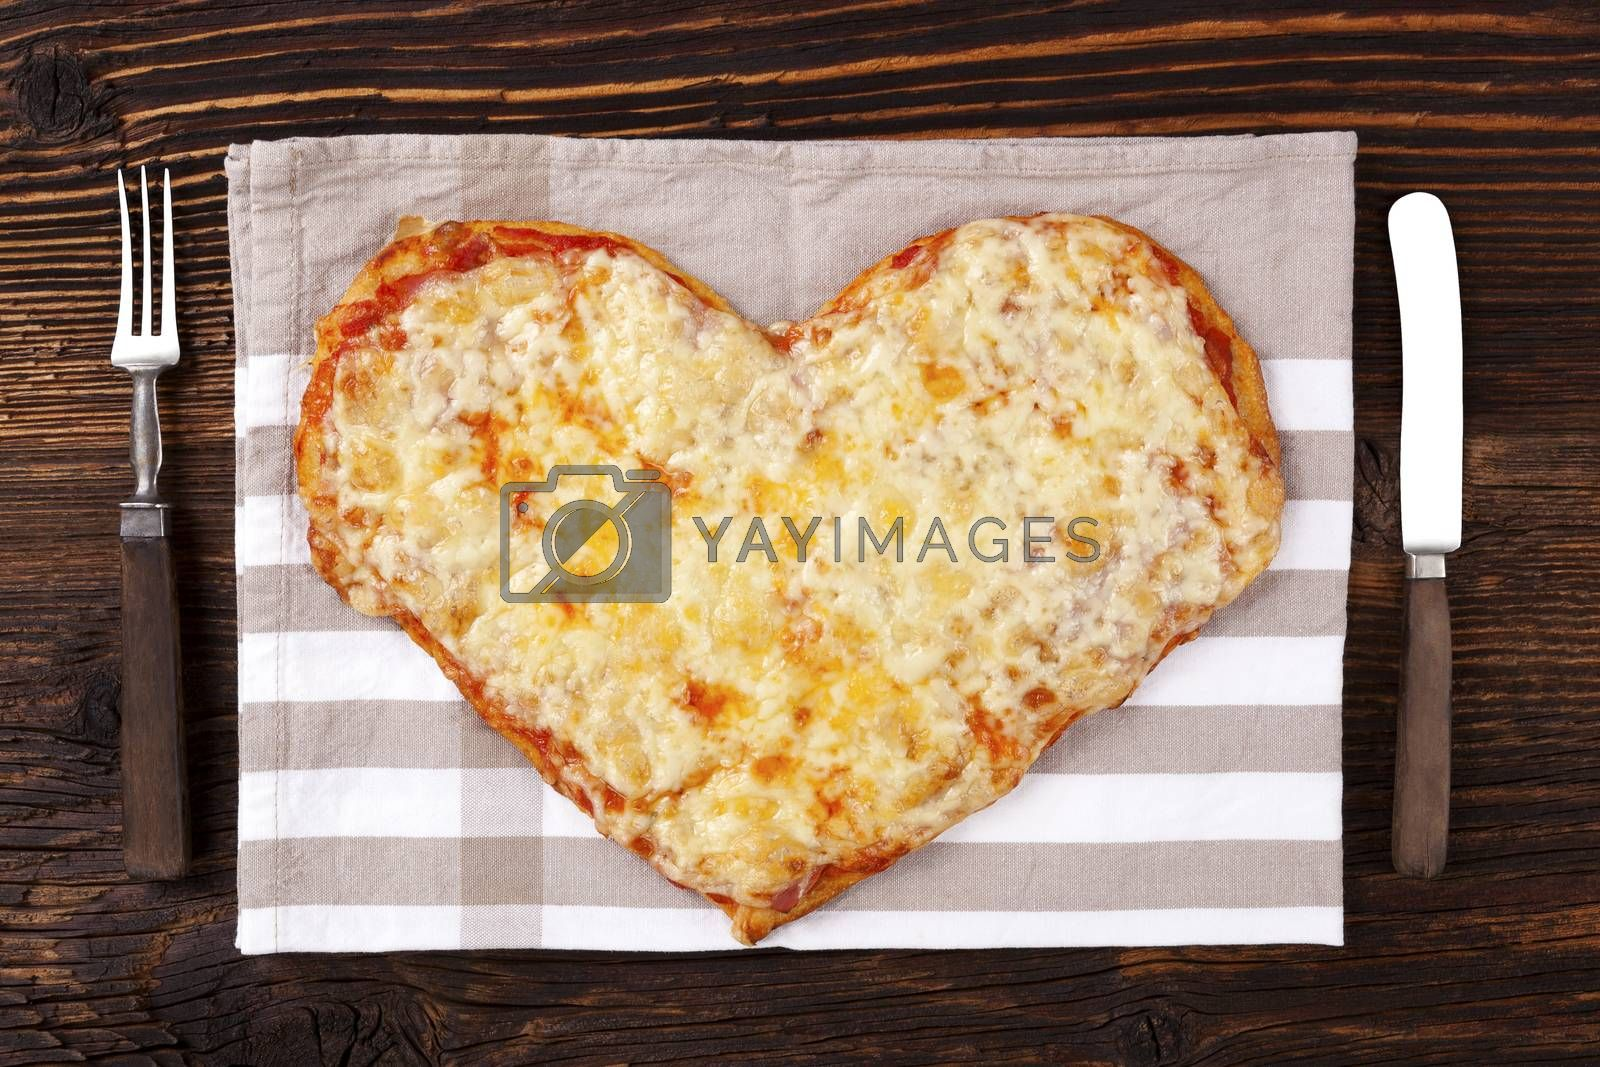 Delicious pizza in heart shape on wooden table, top view. Culinary pizza eating. I love pizza.